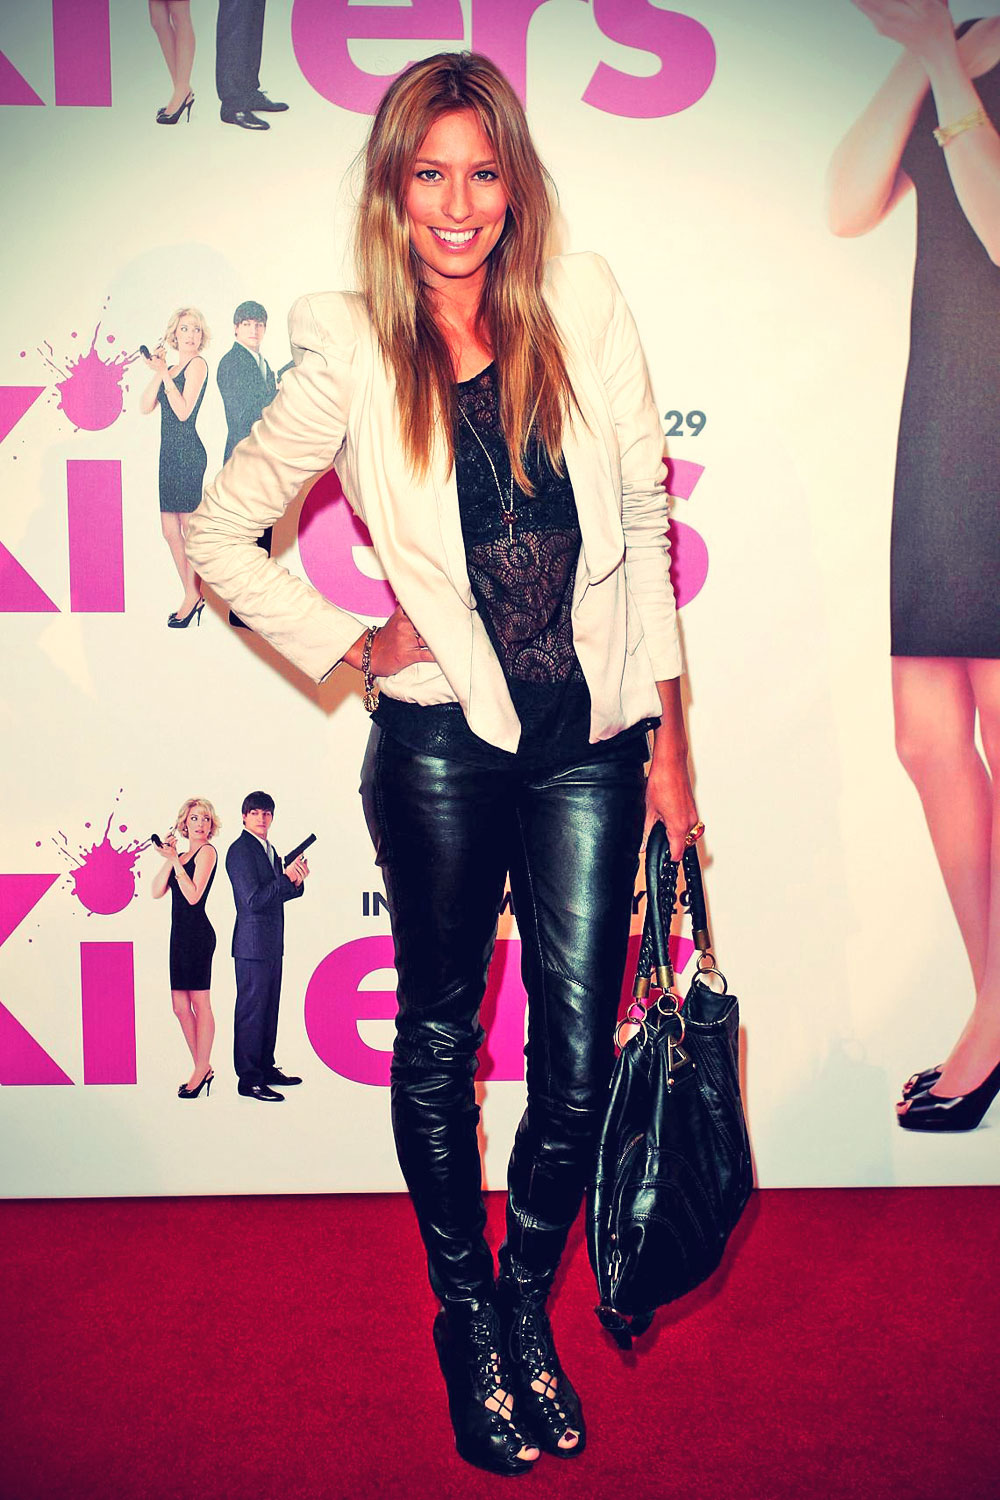 Renee Bargh arrives at the Killers premiere